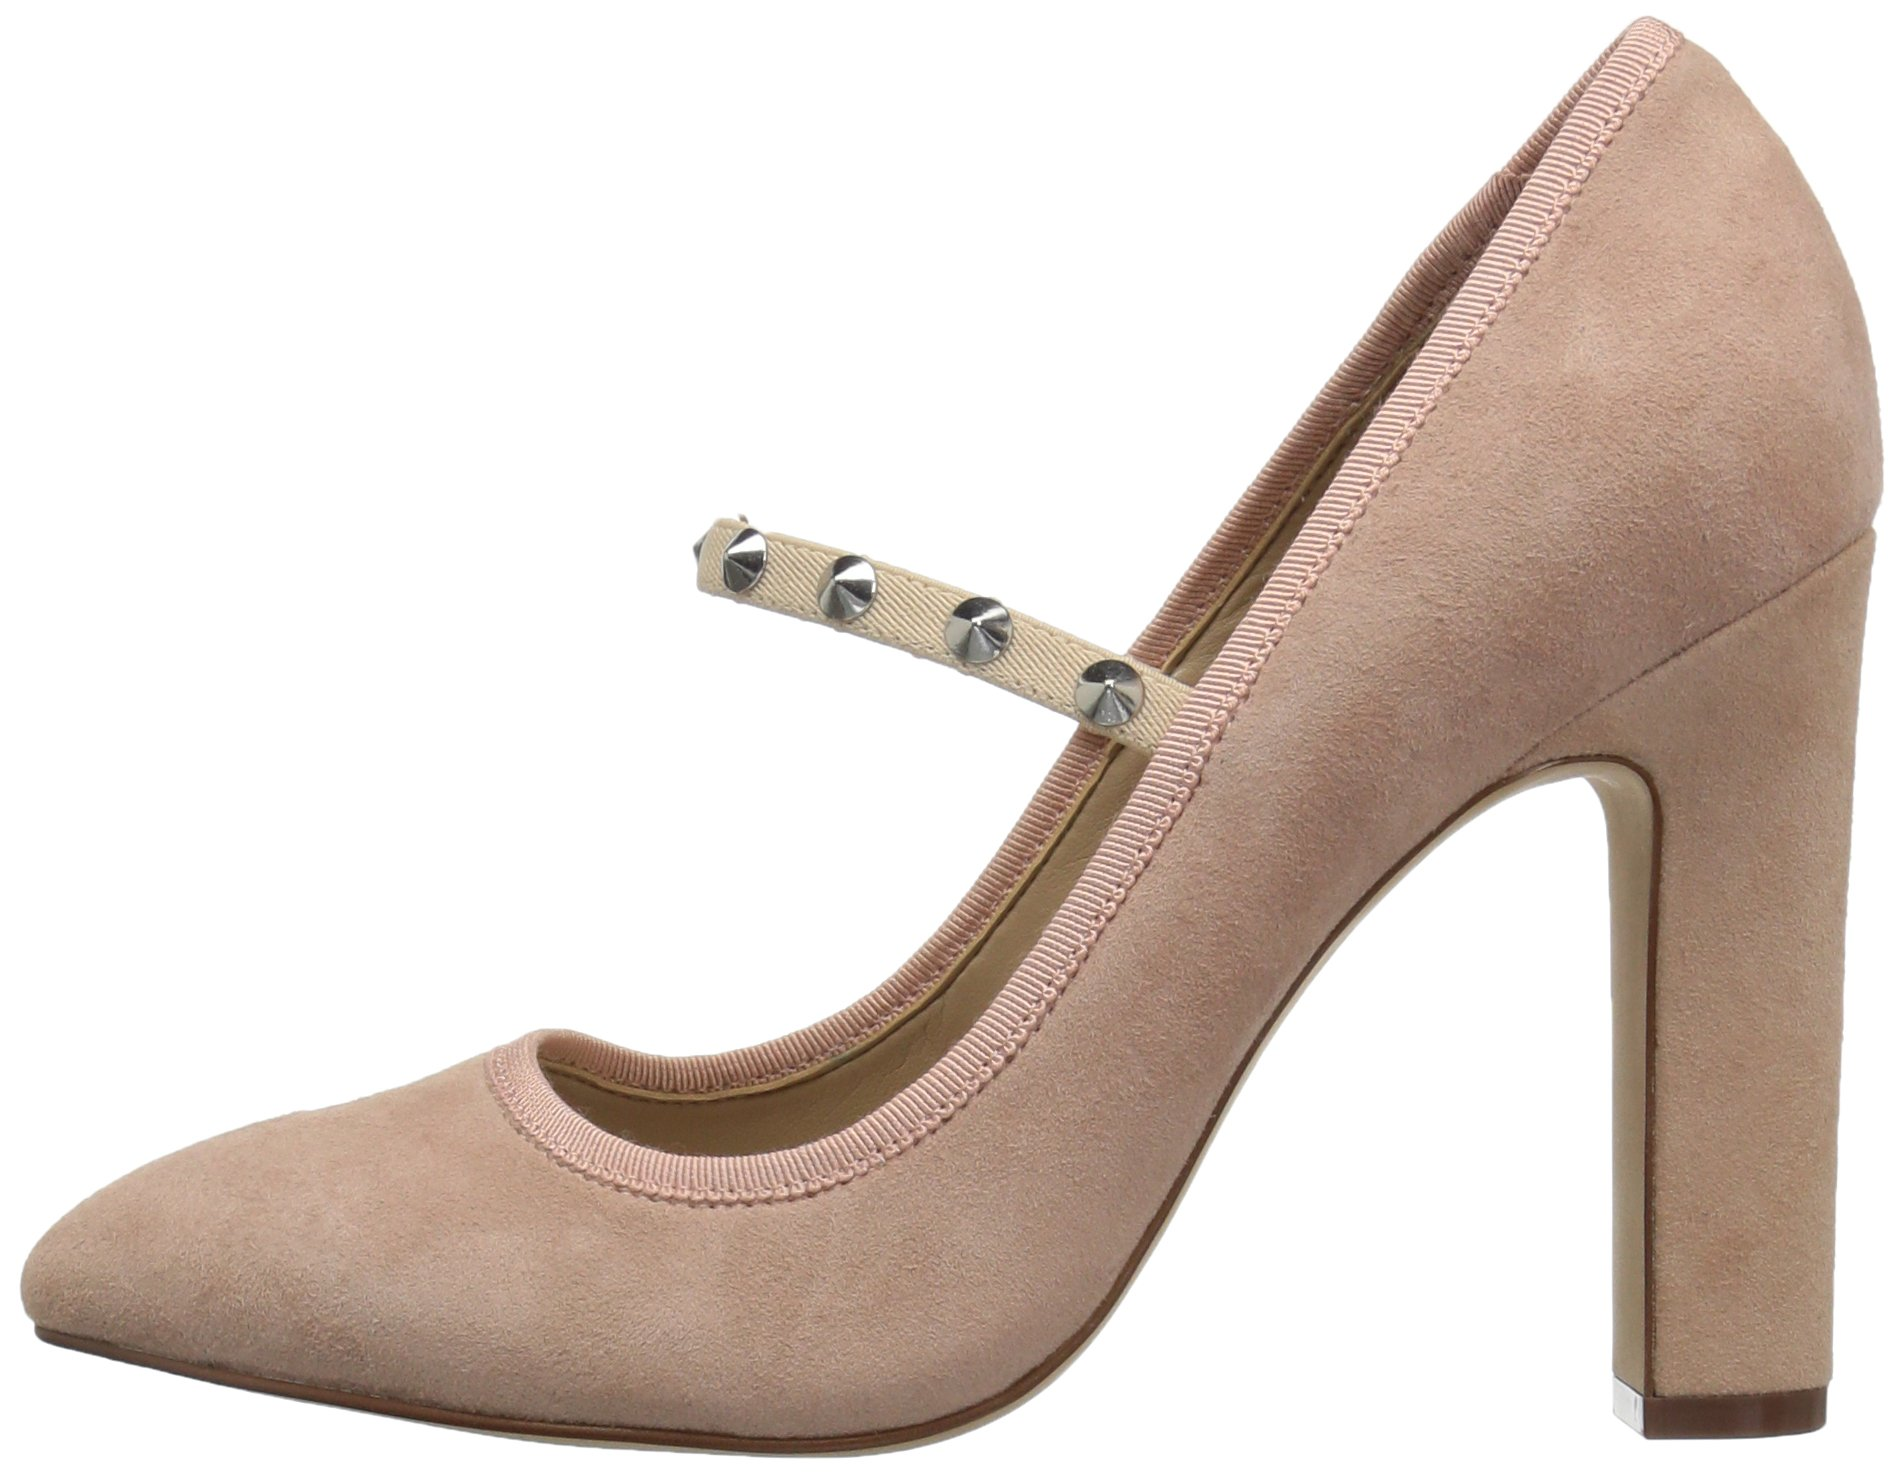 The Fix Women's Shay Studded Mary Jane Dress Pump, Petal Blush, 10 M US by The Fix (Image #5)